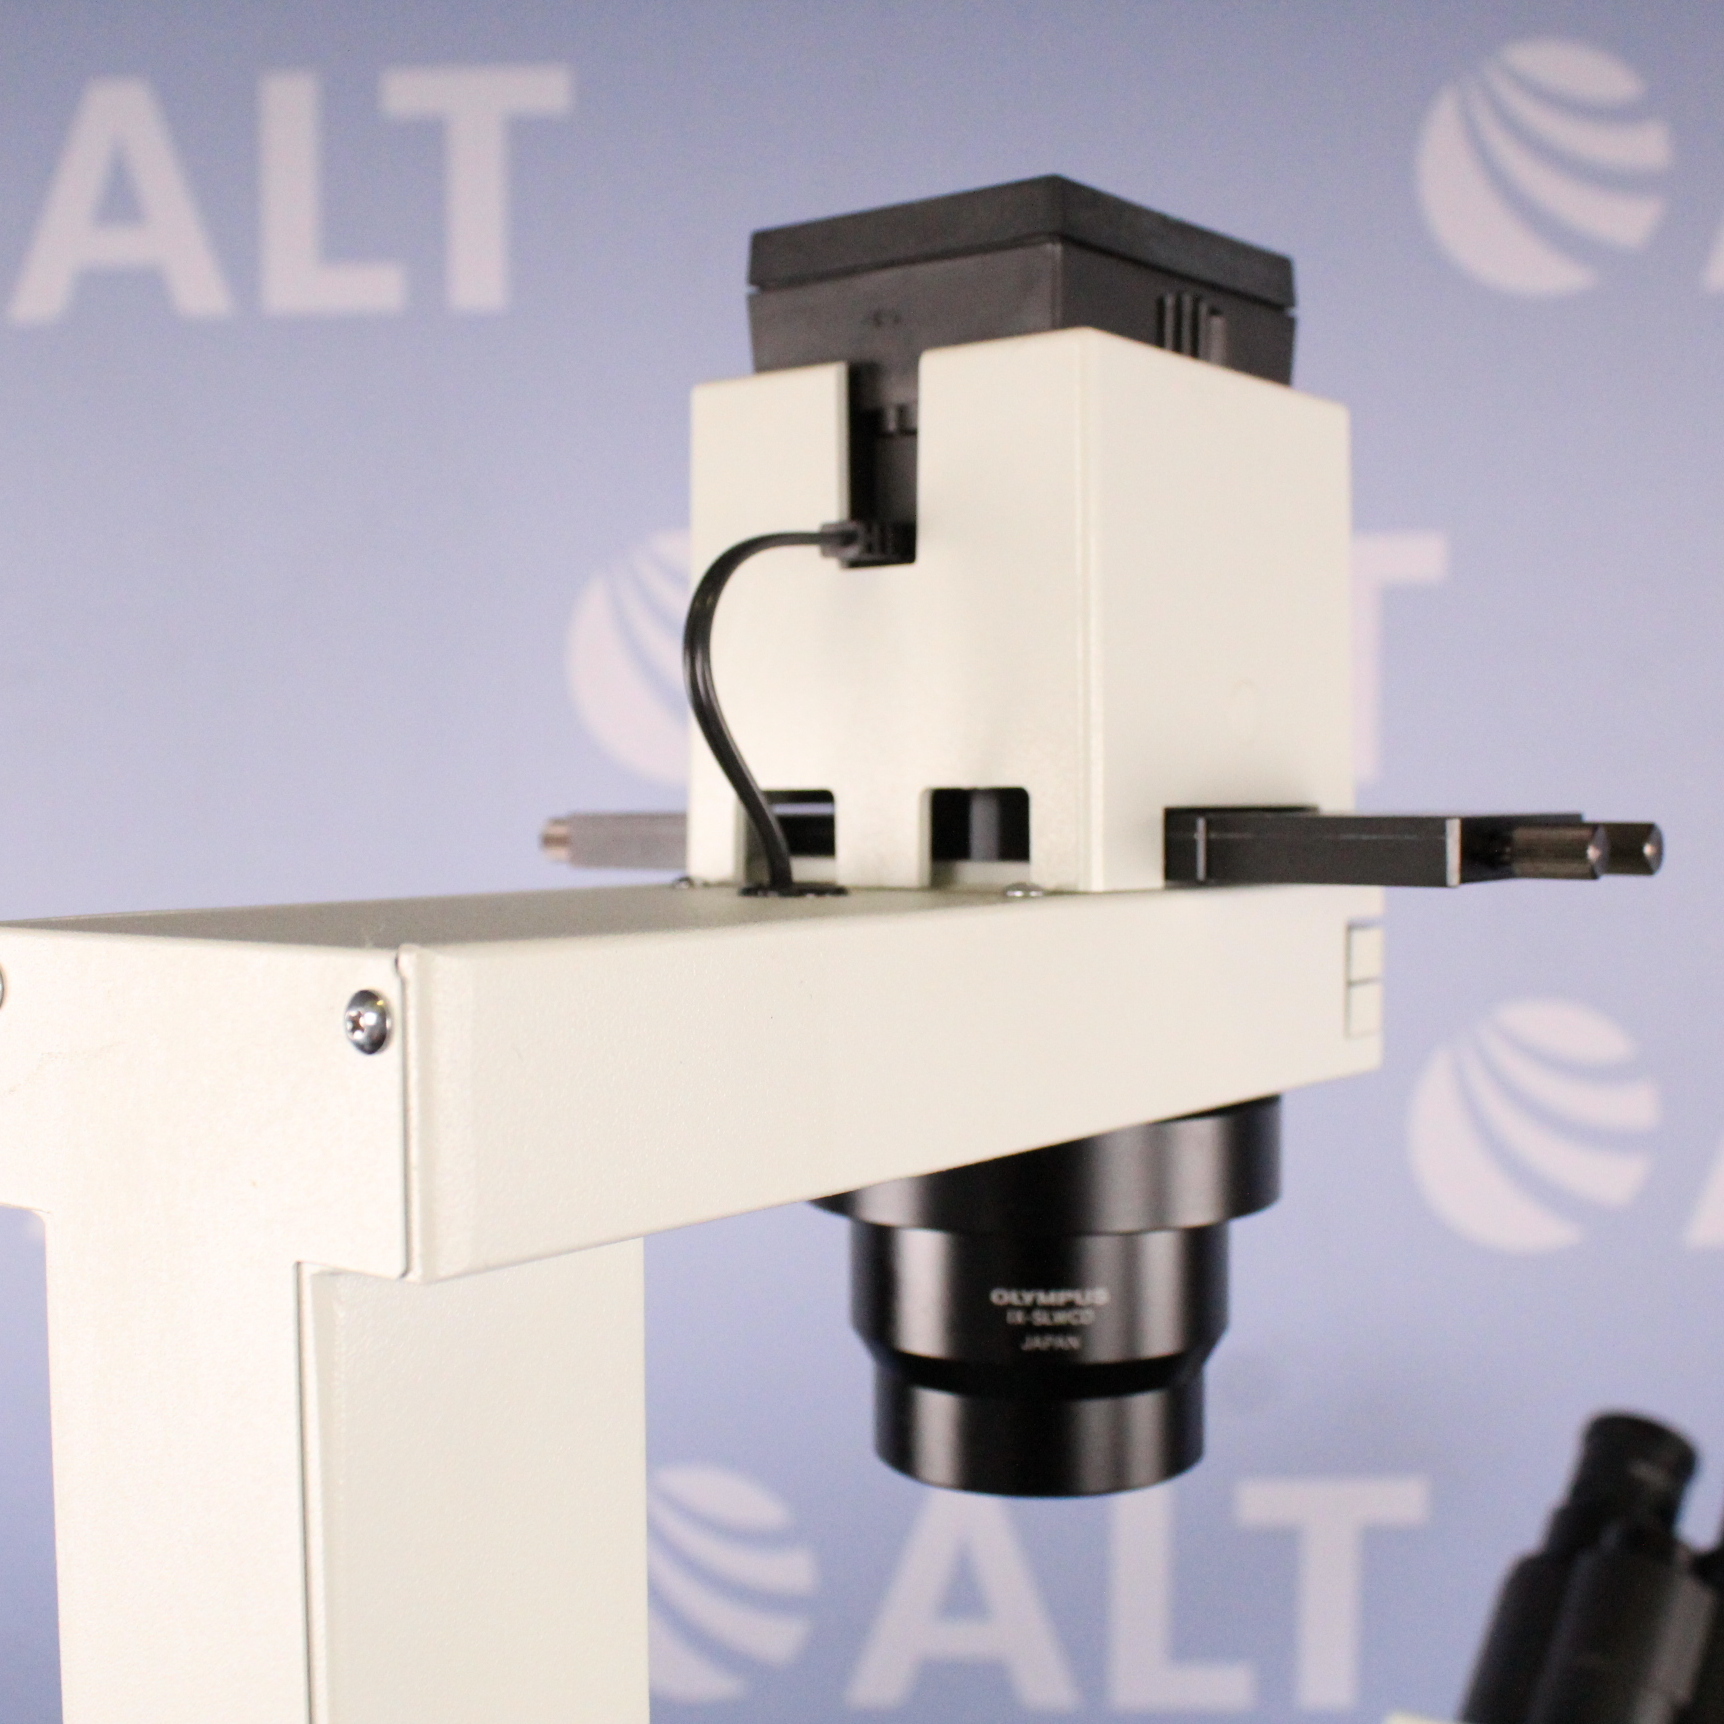 Olympus IX50-S8F2 Laser Dissection Microscope with IX-ILL30 Image